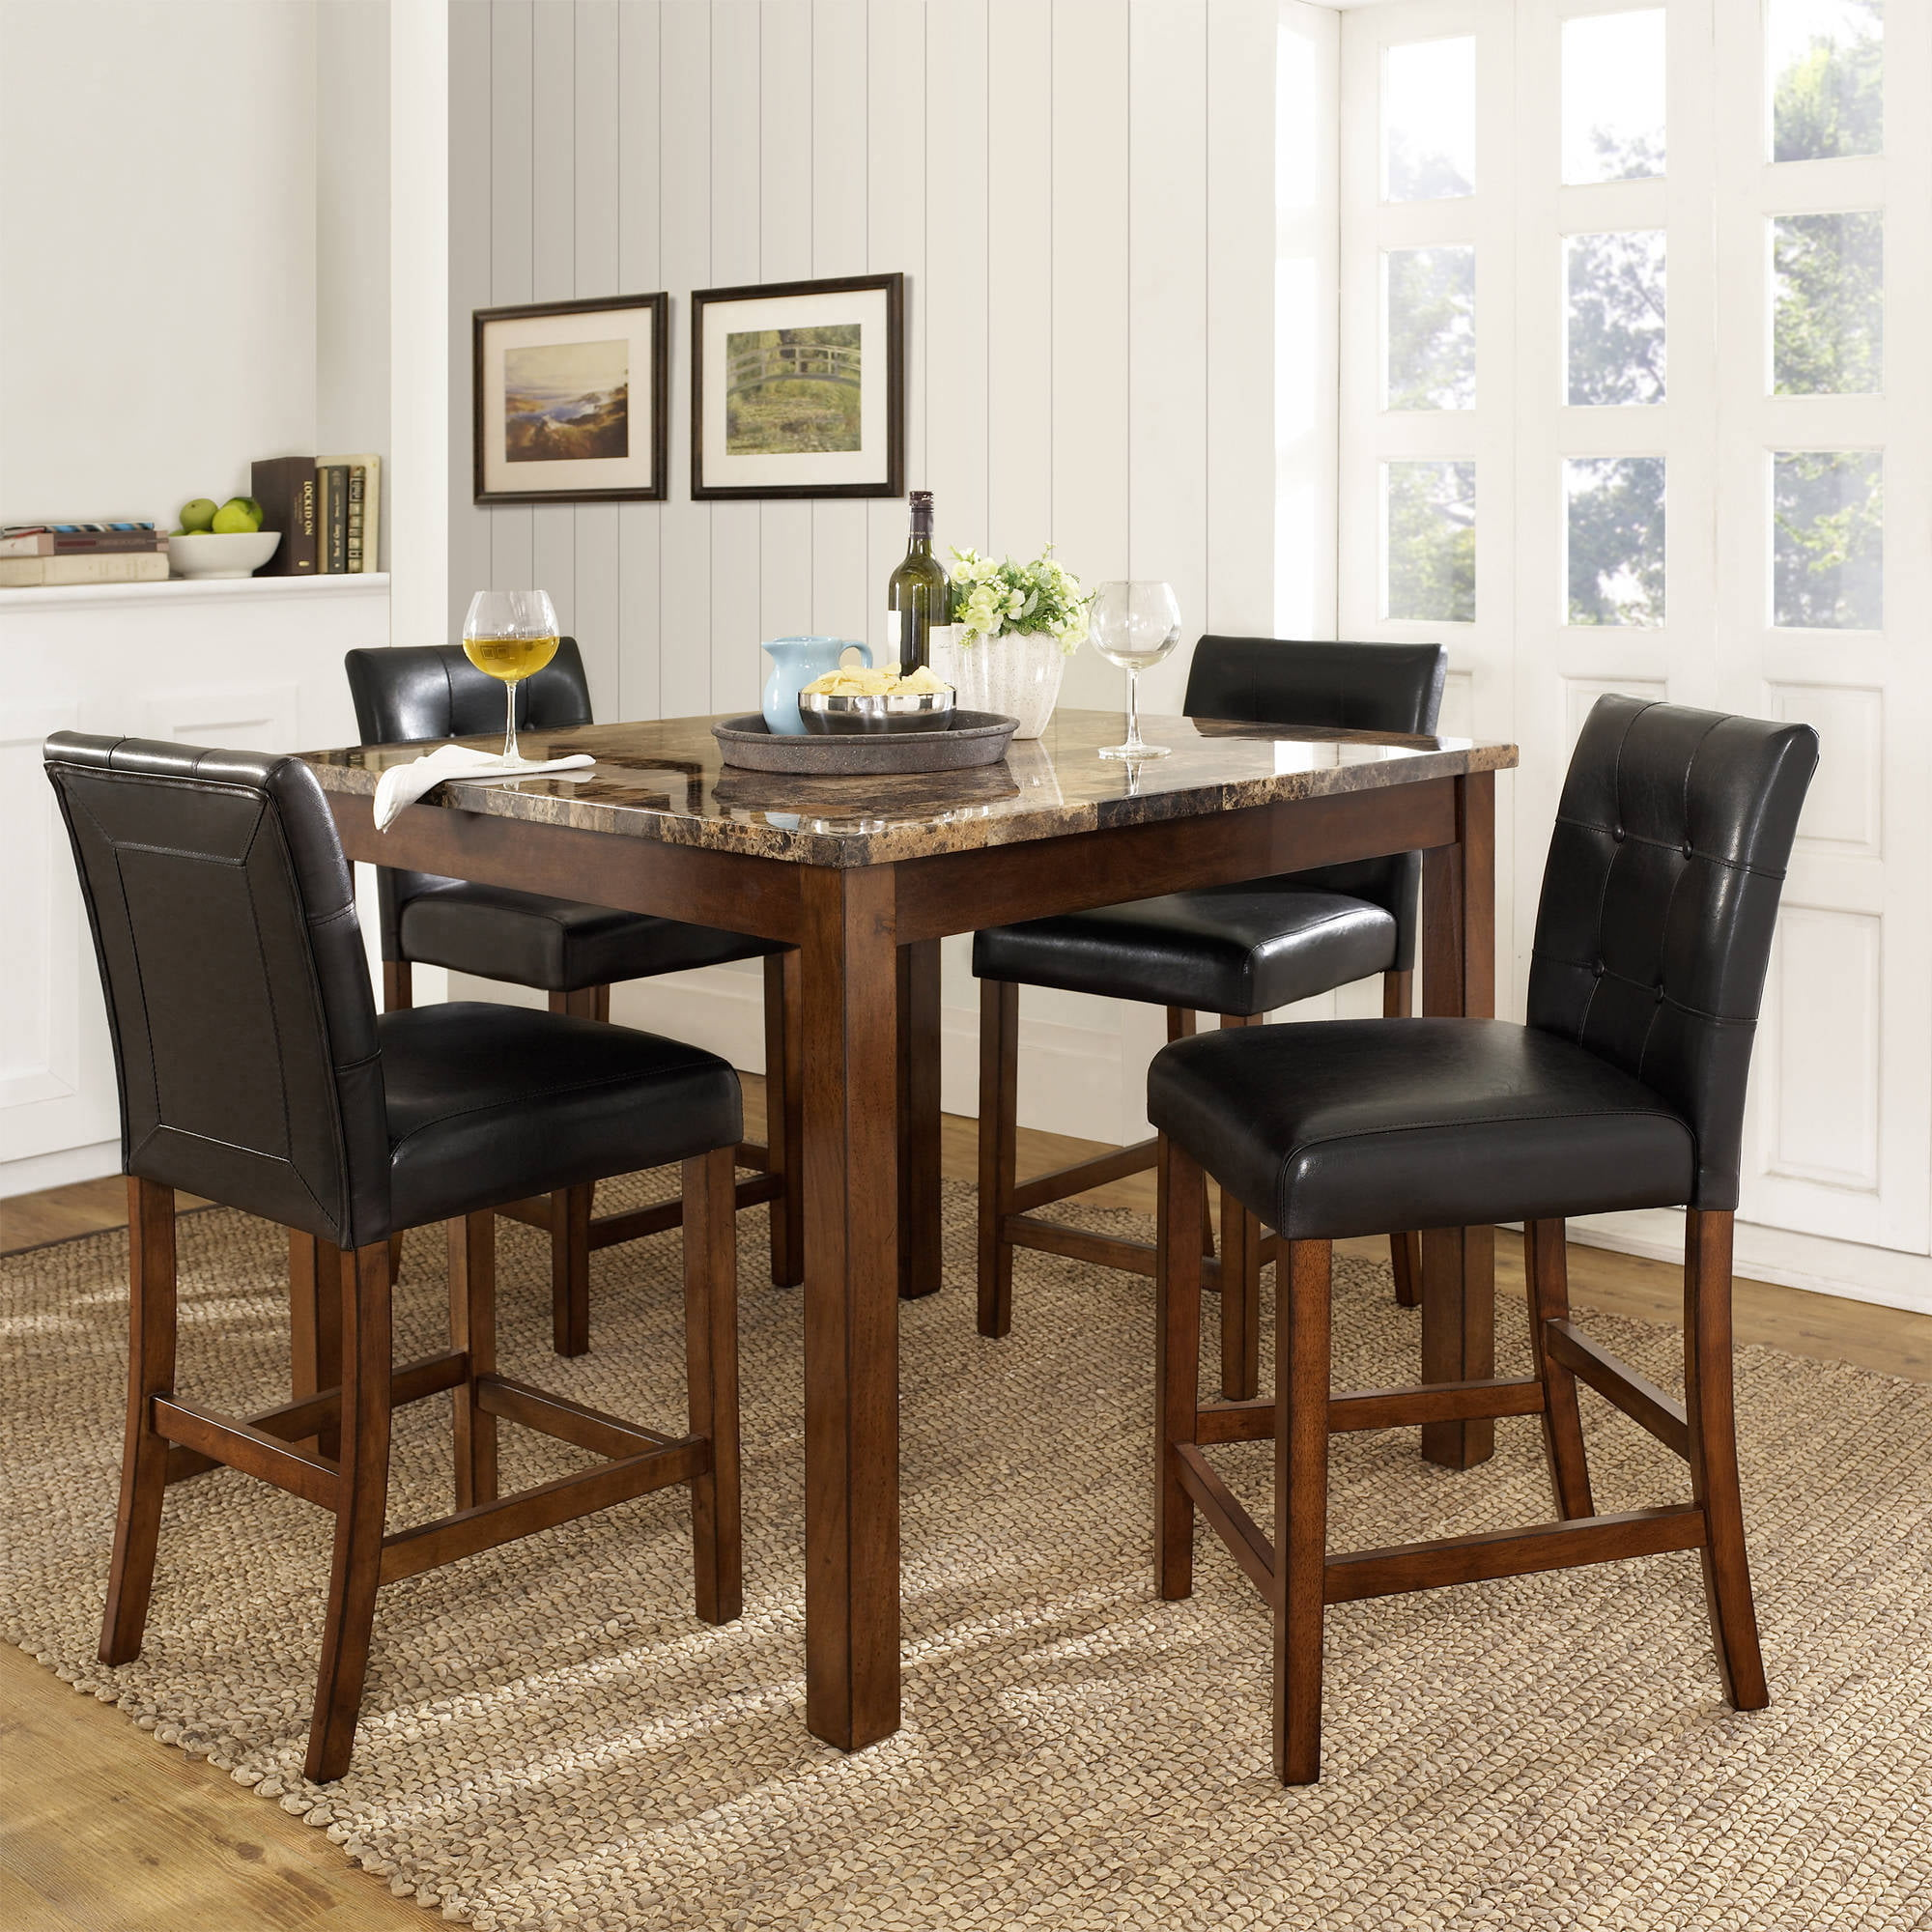 Dining Room Table And Chairs Cool Kitchen & Dining Furniture  Walmart Decorating Design